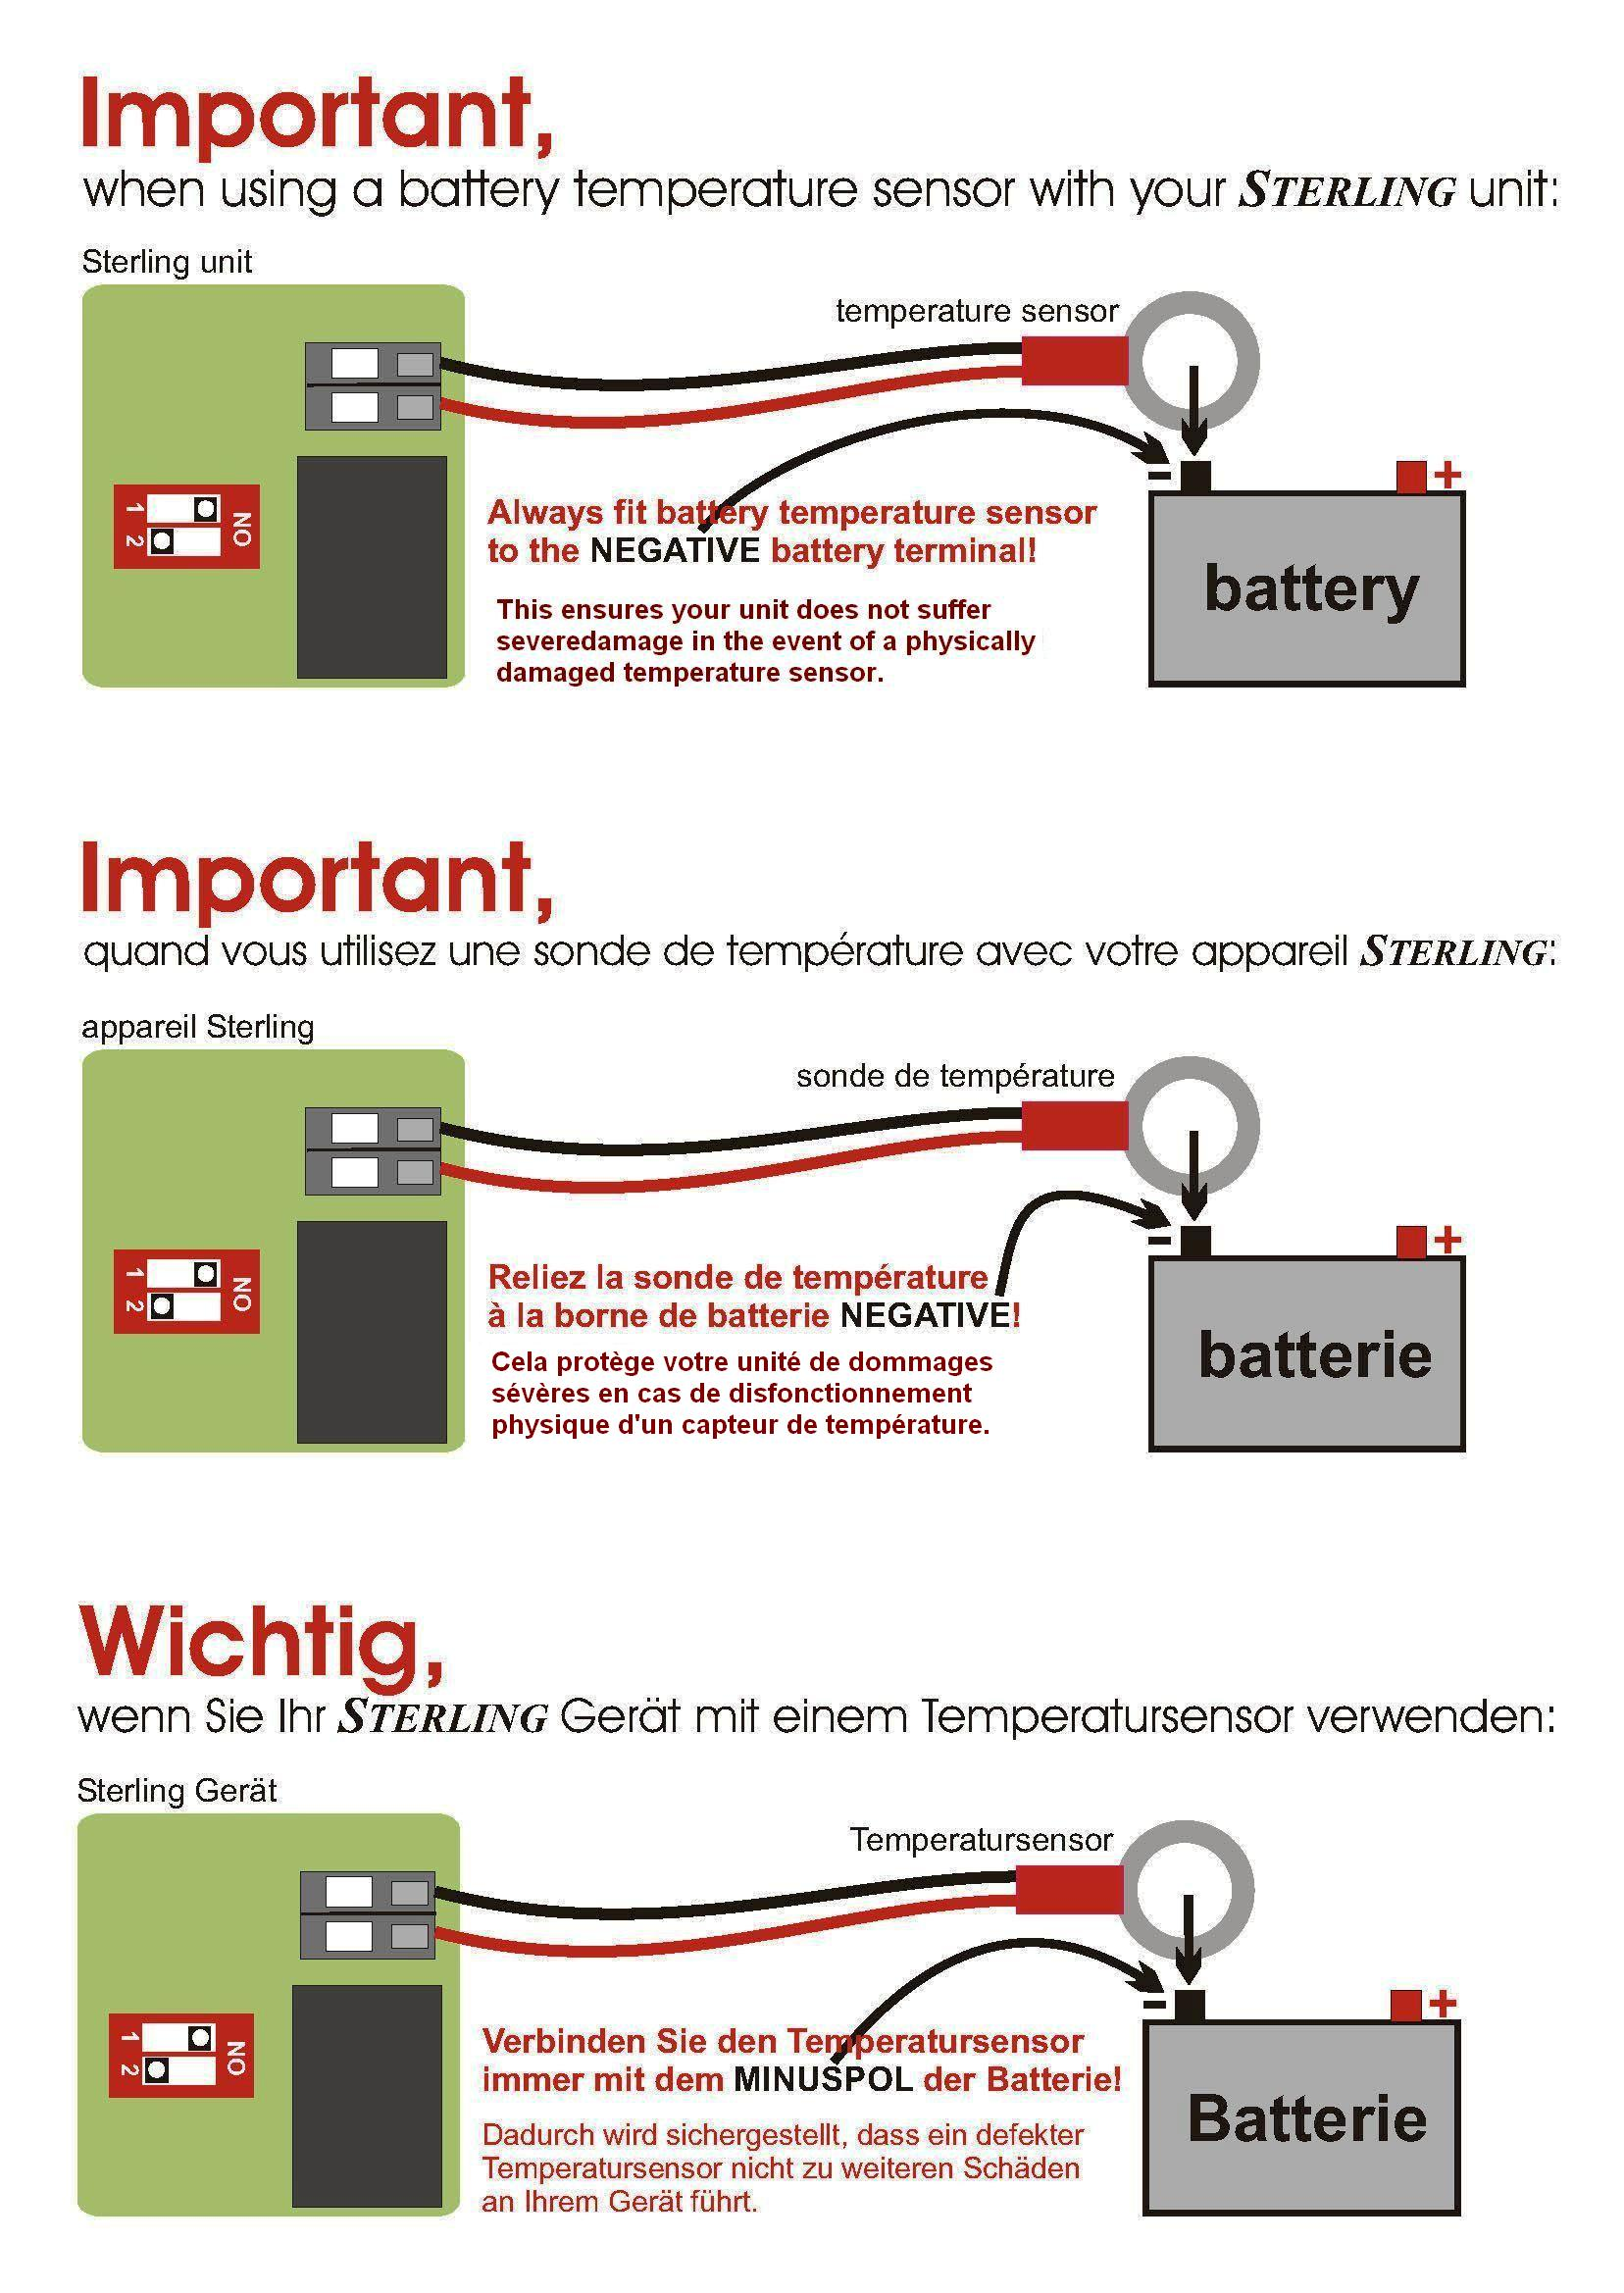 battery isolator wiring diagram sr7 avr diagrams literature for pro charge ultra marine http www sterling power usa com library temp sensor installation warning jpg a